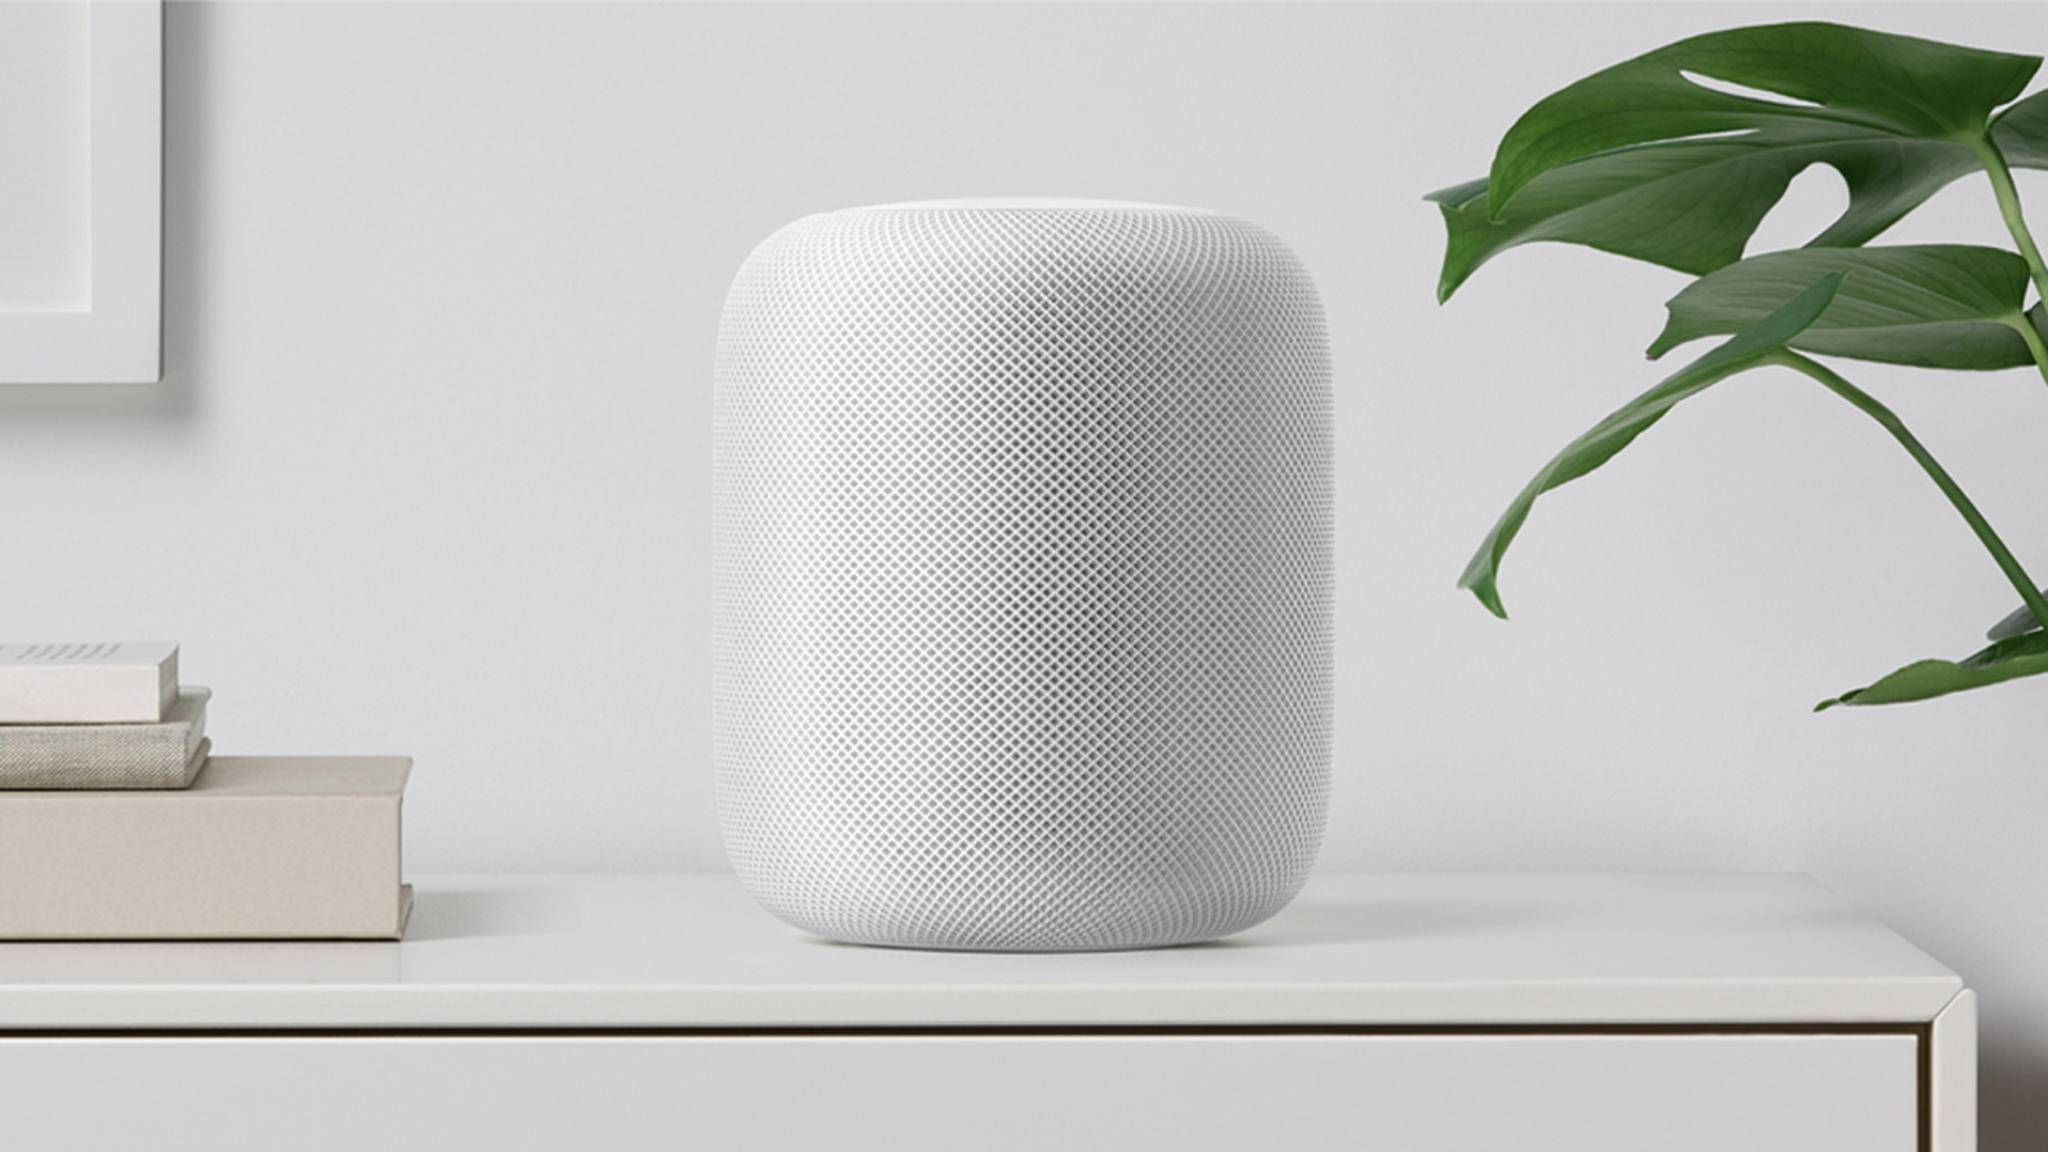 Der Apple HomePod soll Amazon Echo und Google Home Konkurrenz machen.